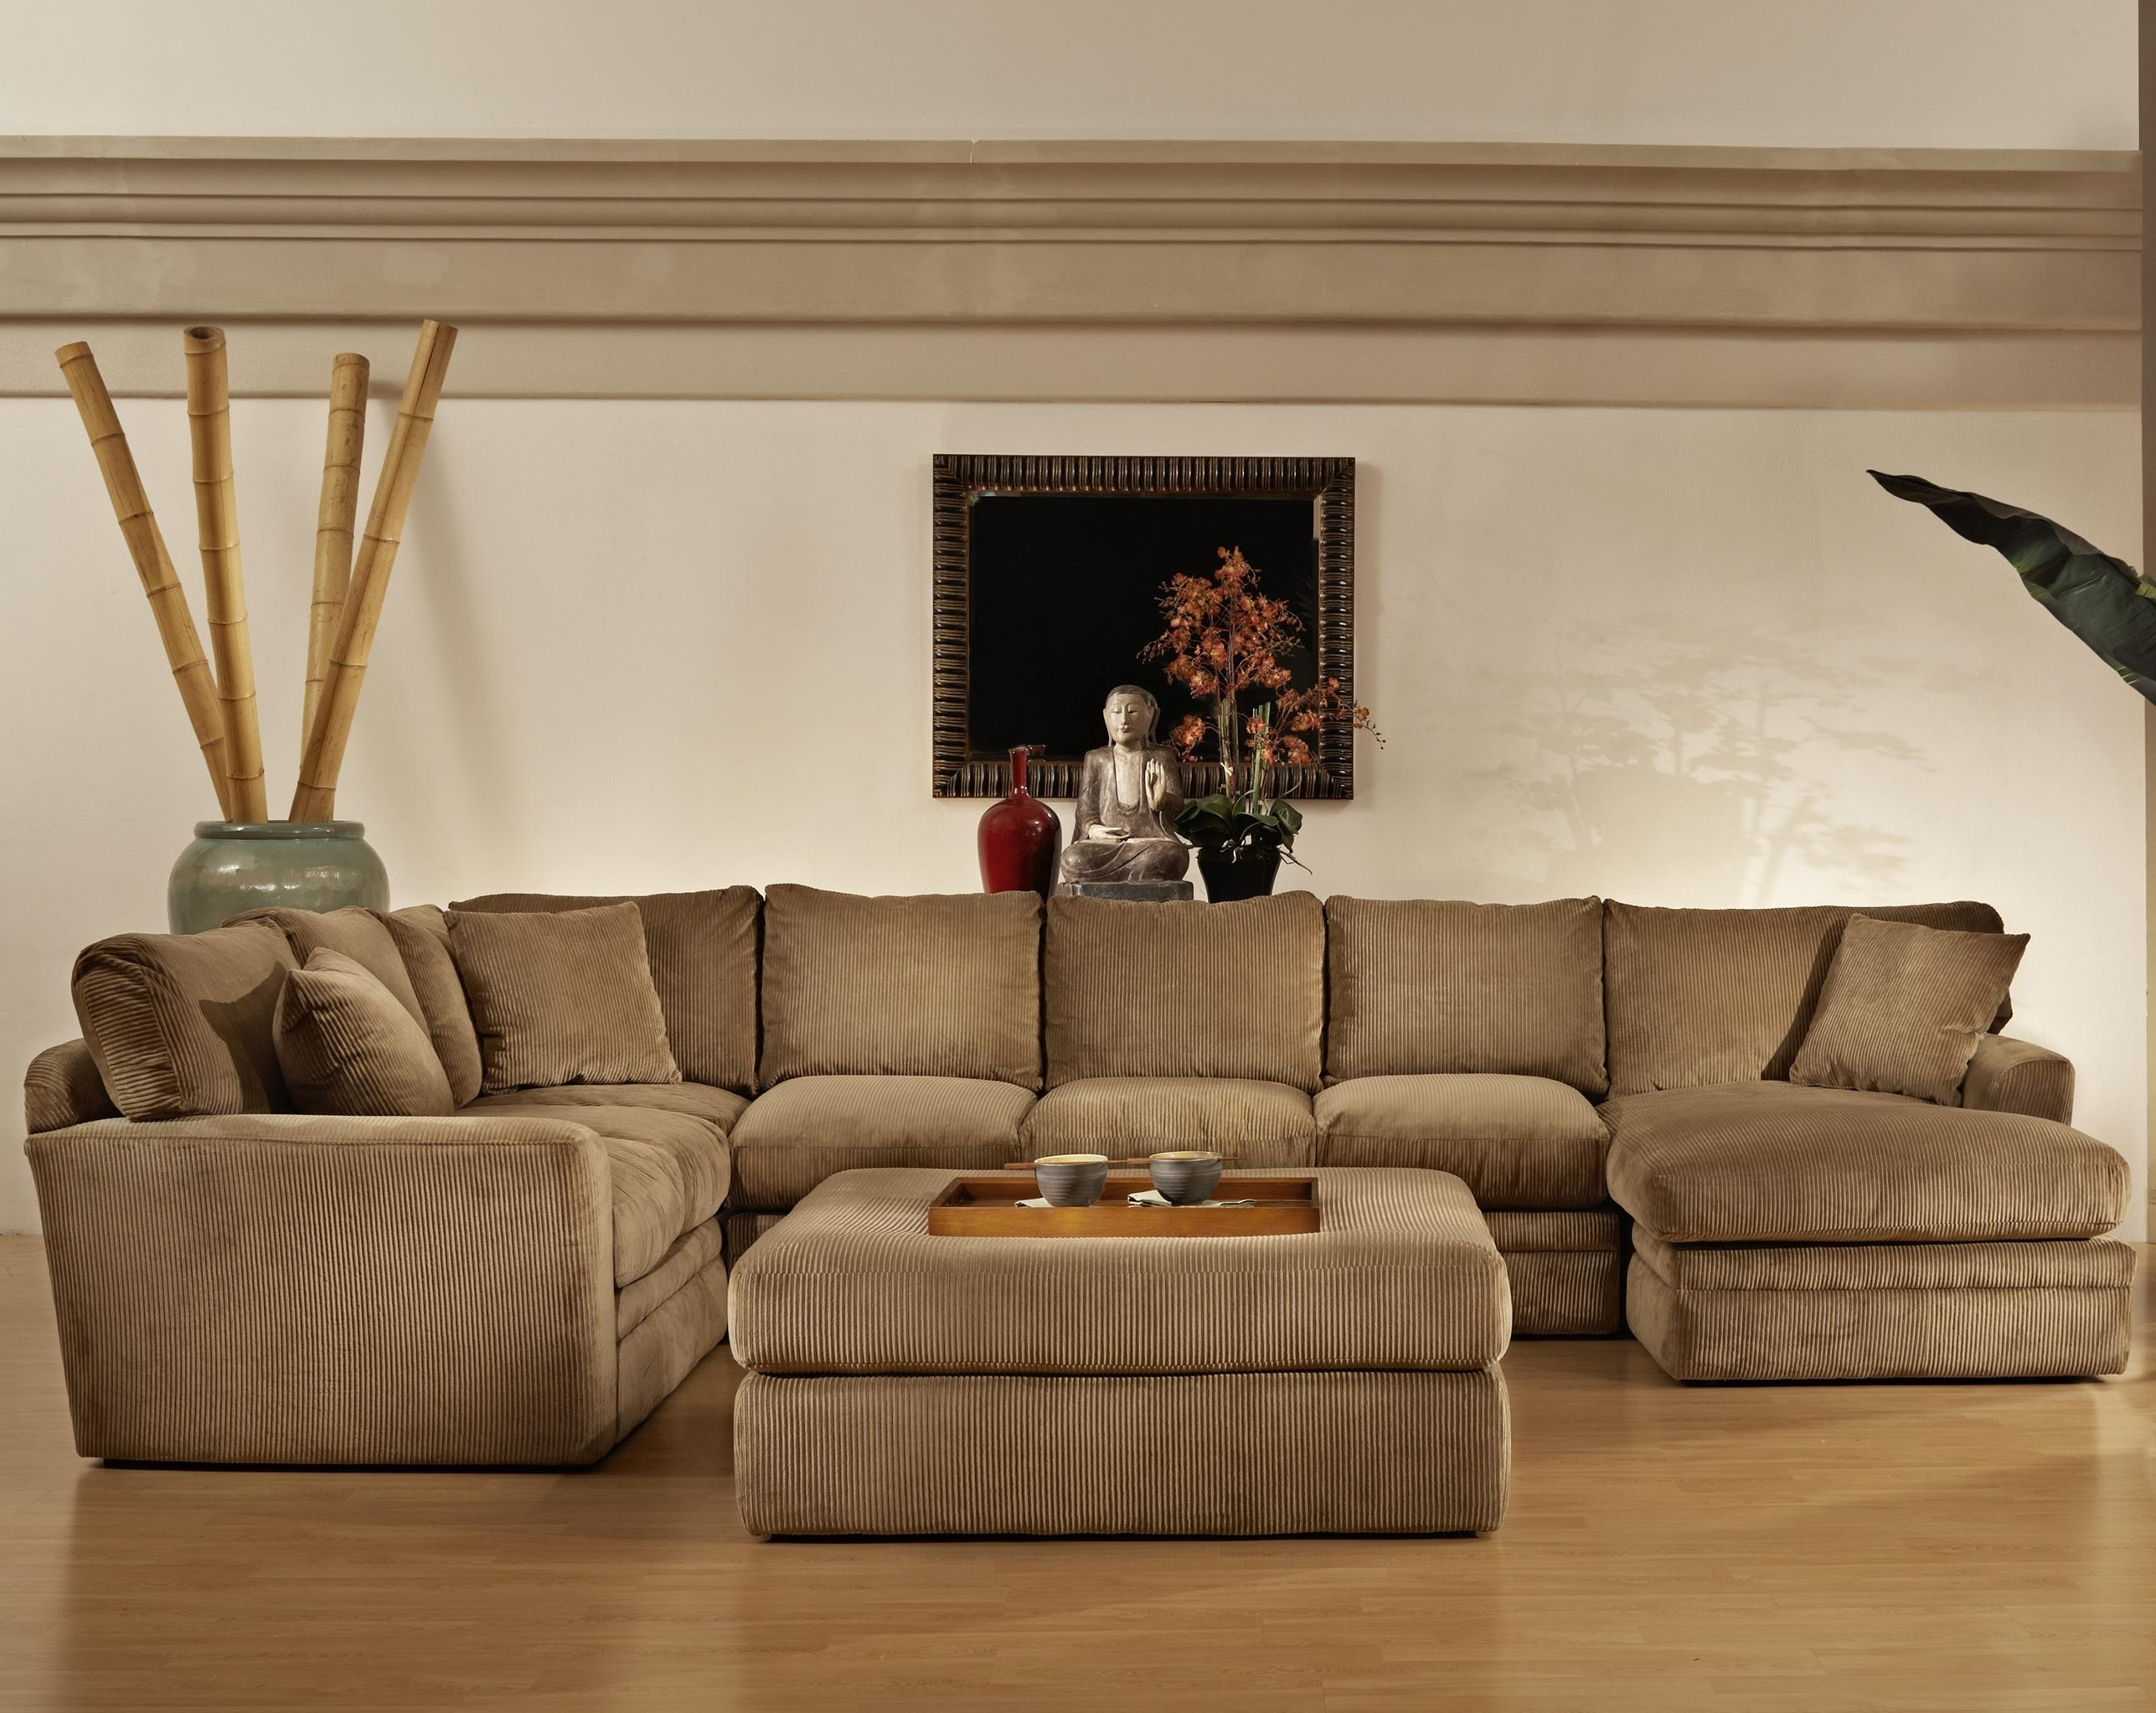 Extra Large Sectional Sofa With Chaise And Ottoman U Shaped In With Regard To Most Recent Extra Large U Shaped Sectionals (Gallery 17 of 20)